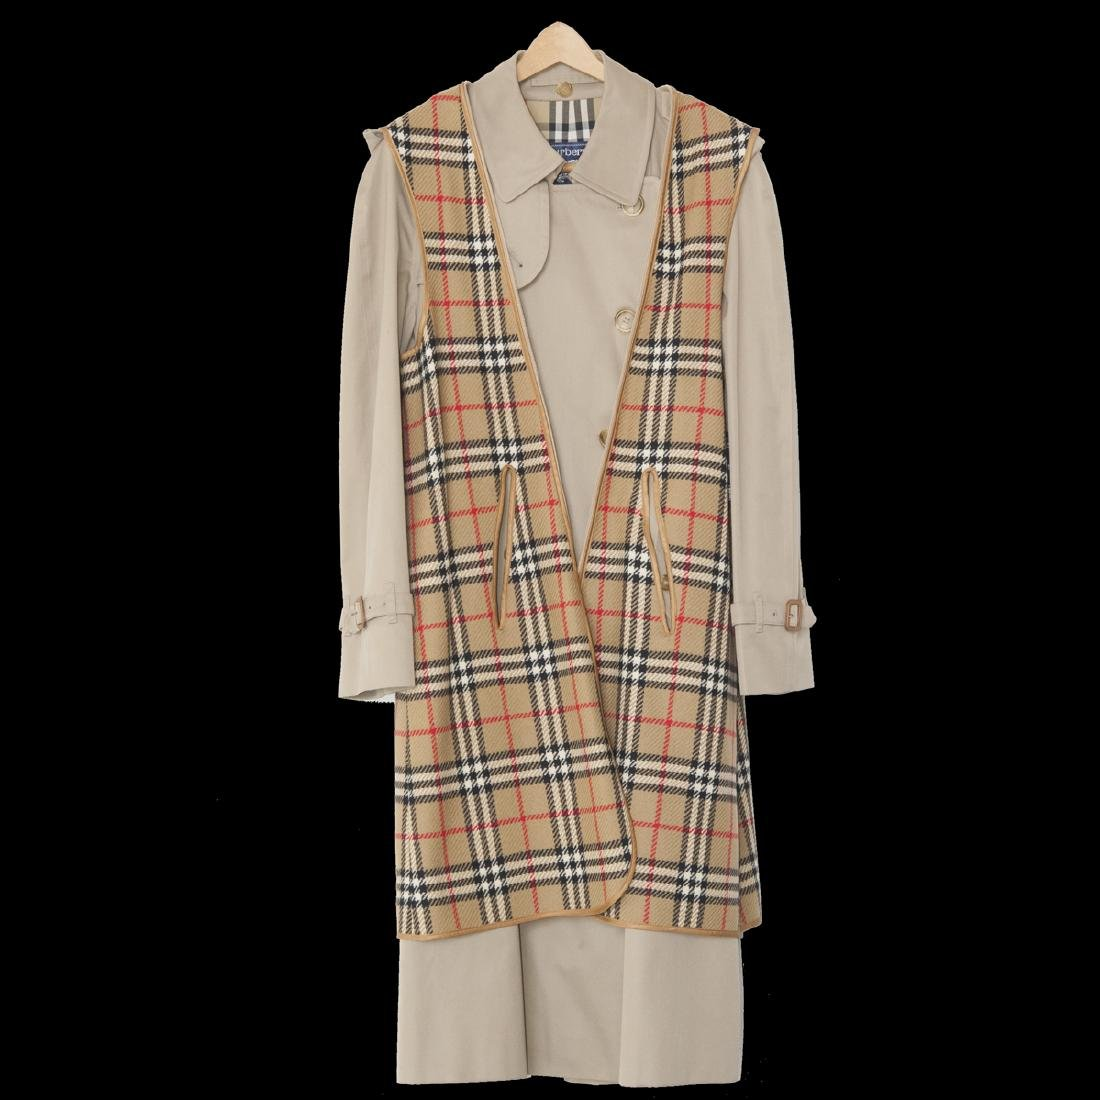 Vintage Burberry's of London Trench Coat